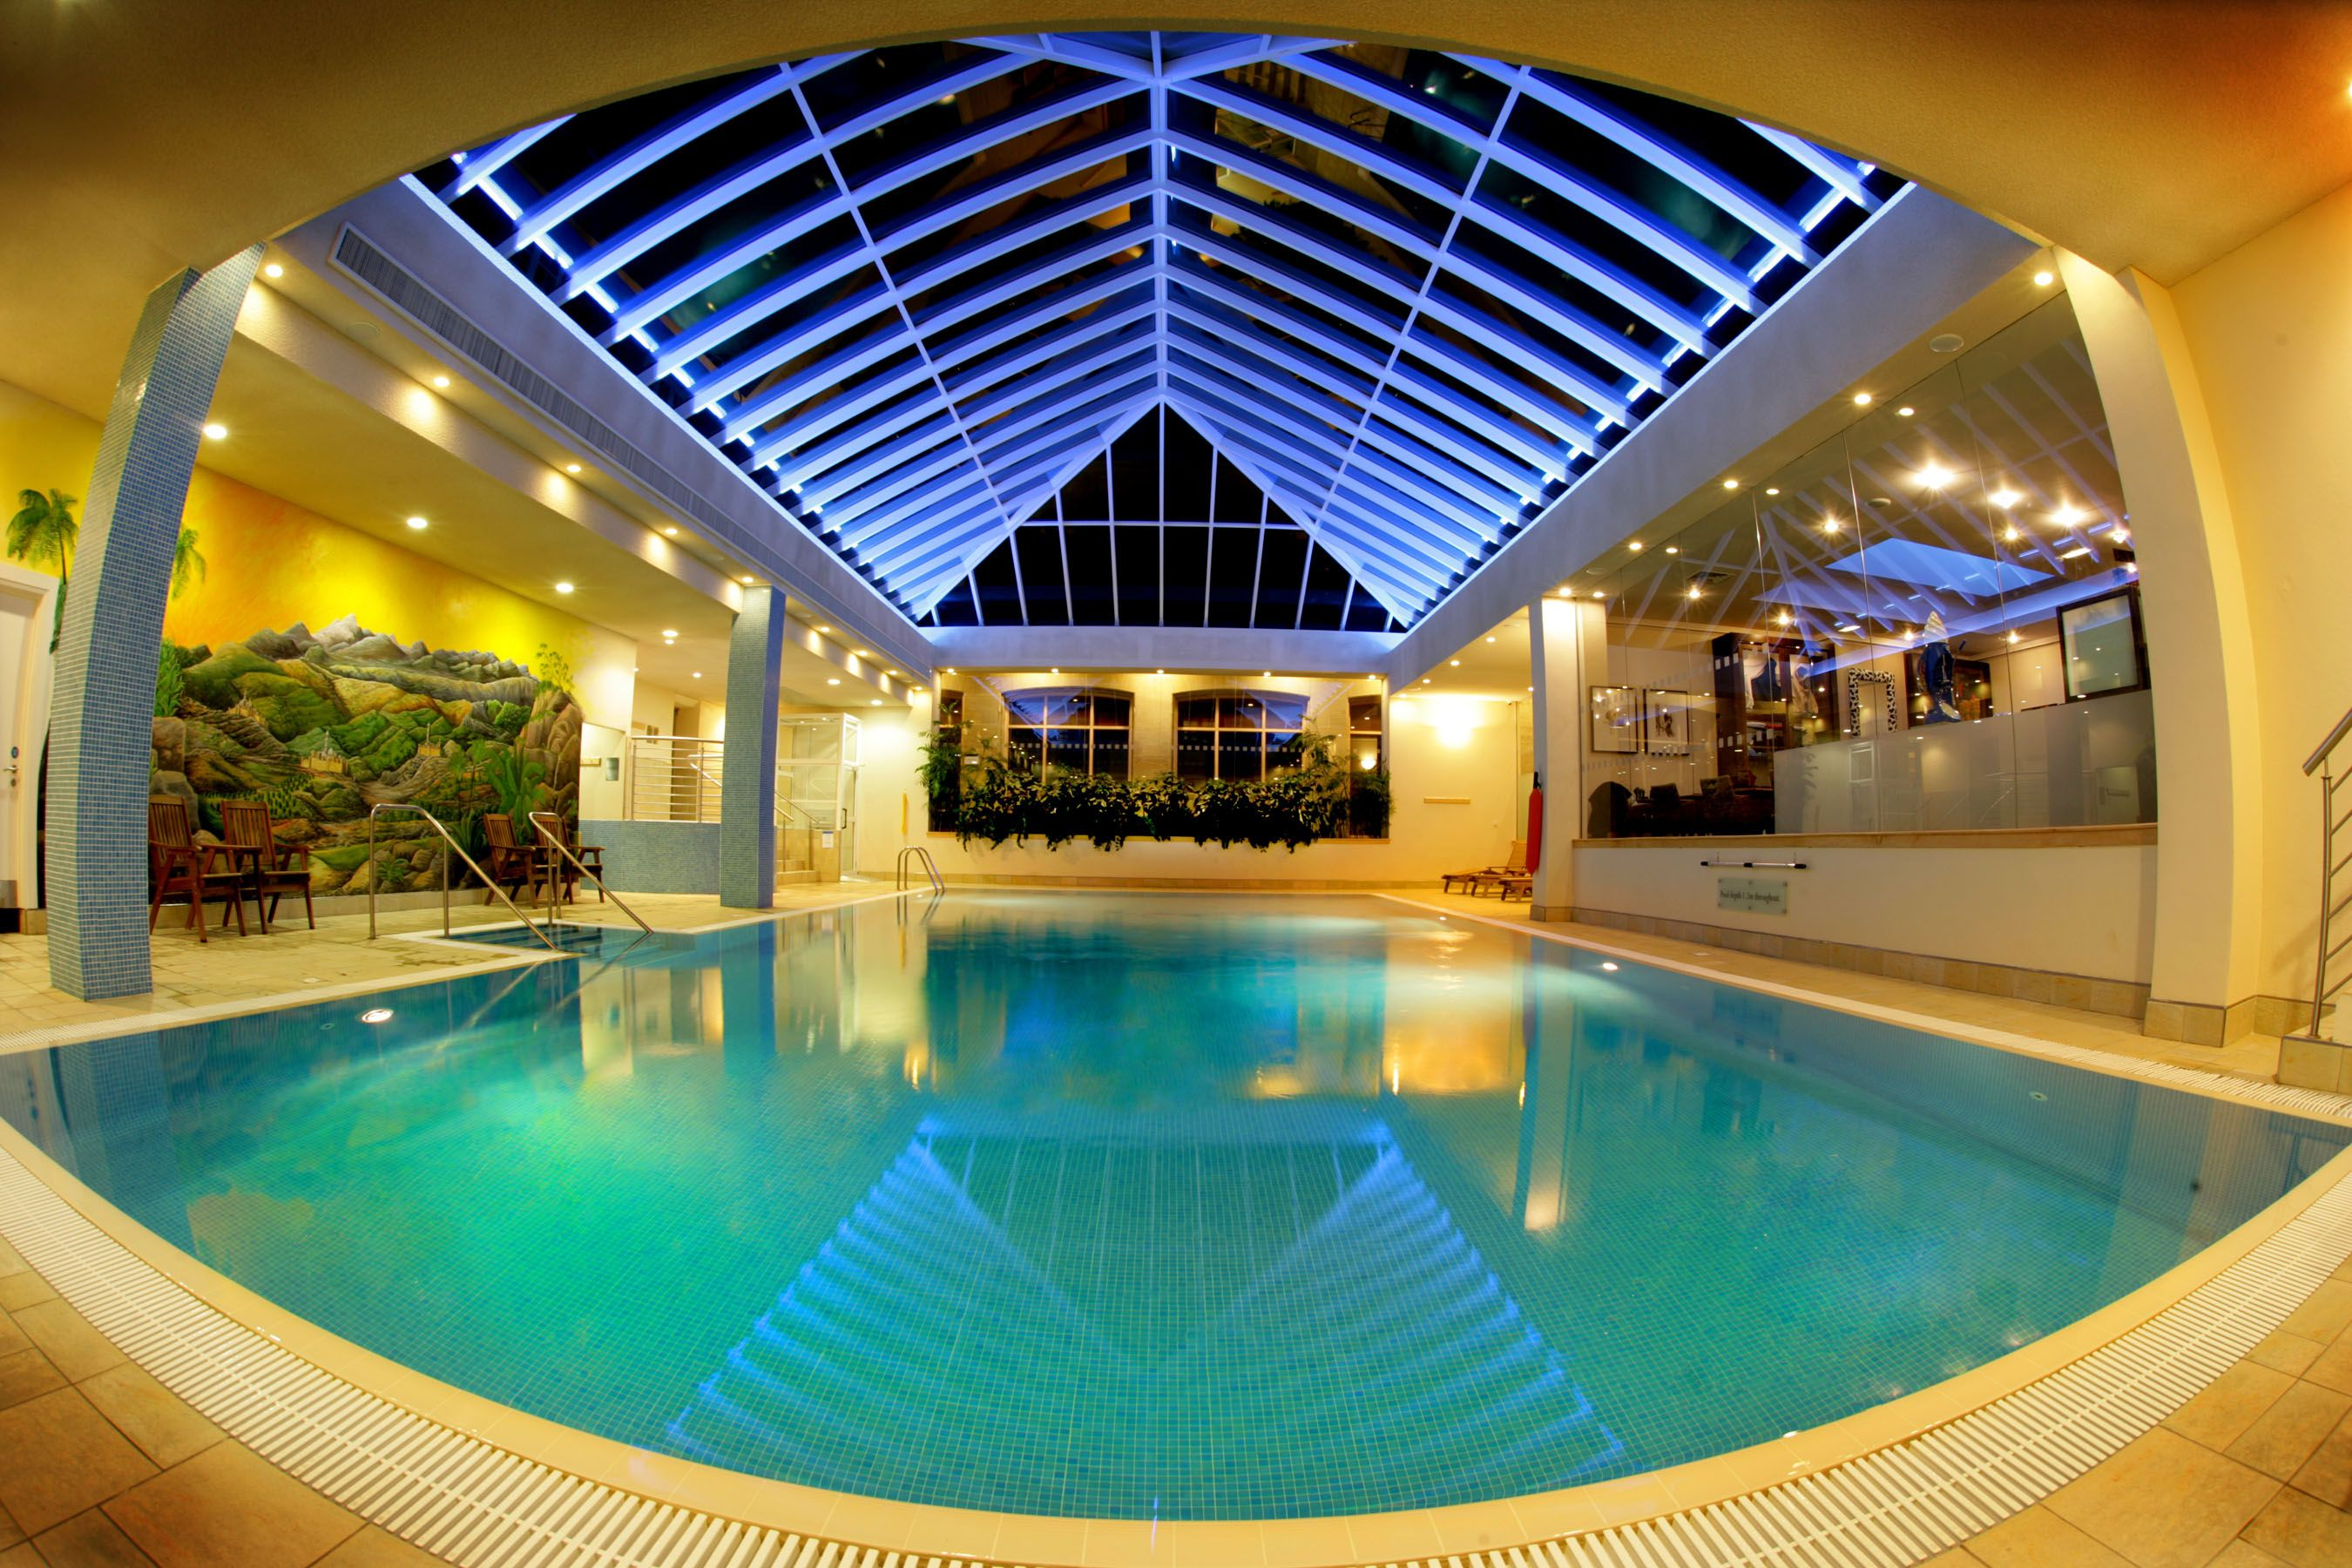 Design Indoor Swimming Pool top 25 ideas to complete your home with indoor swimming pool pool